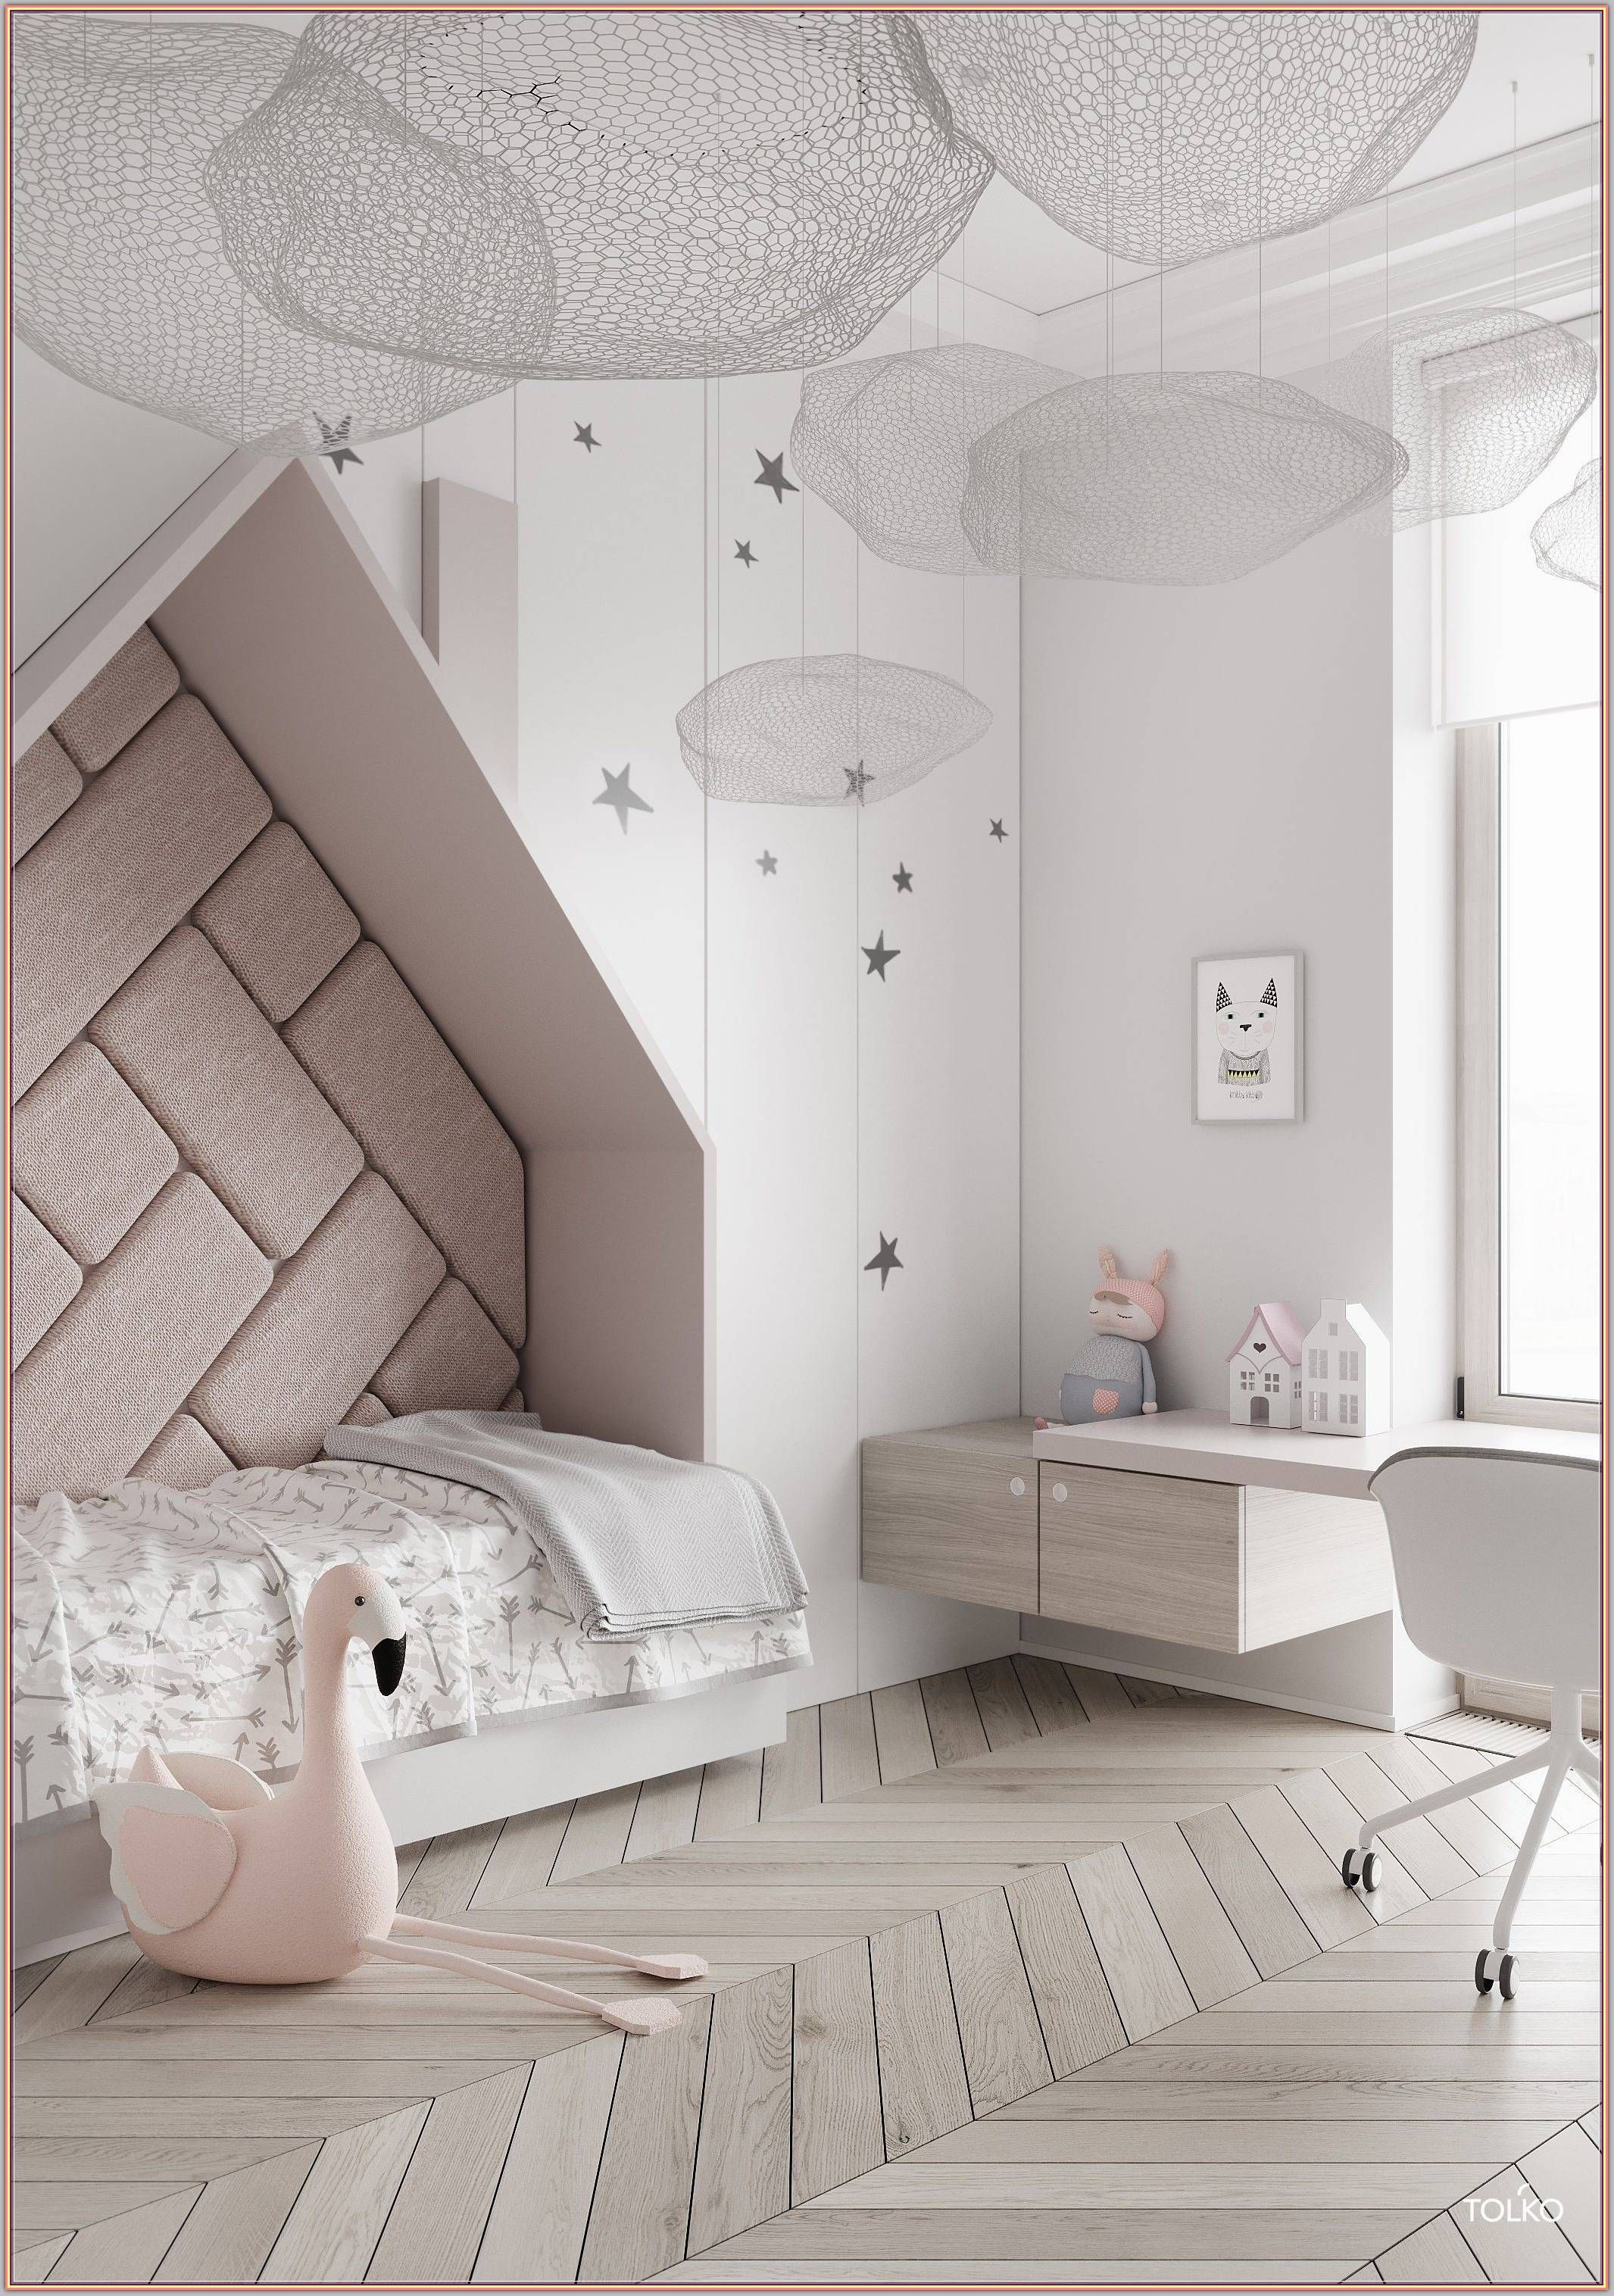 Change The Look Of Your Bedroom With These Design Tips Modern Interior Design Child Bedroom Layout Modern Kids Room Modern Kids Room Design